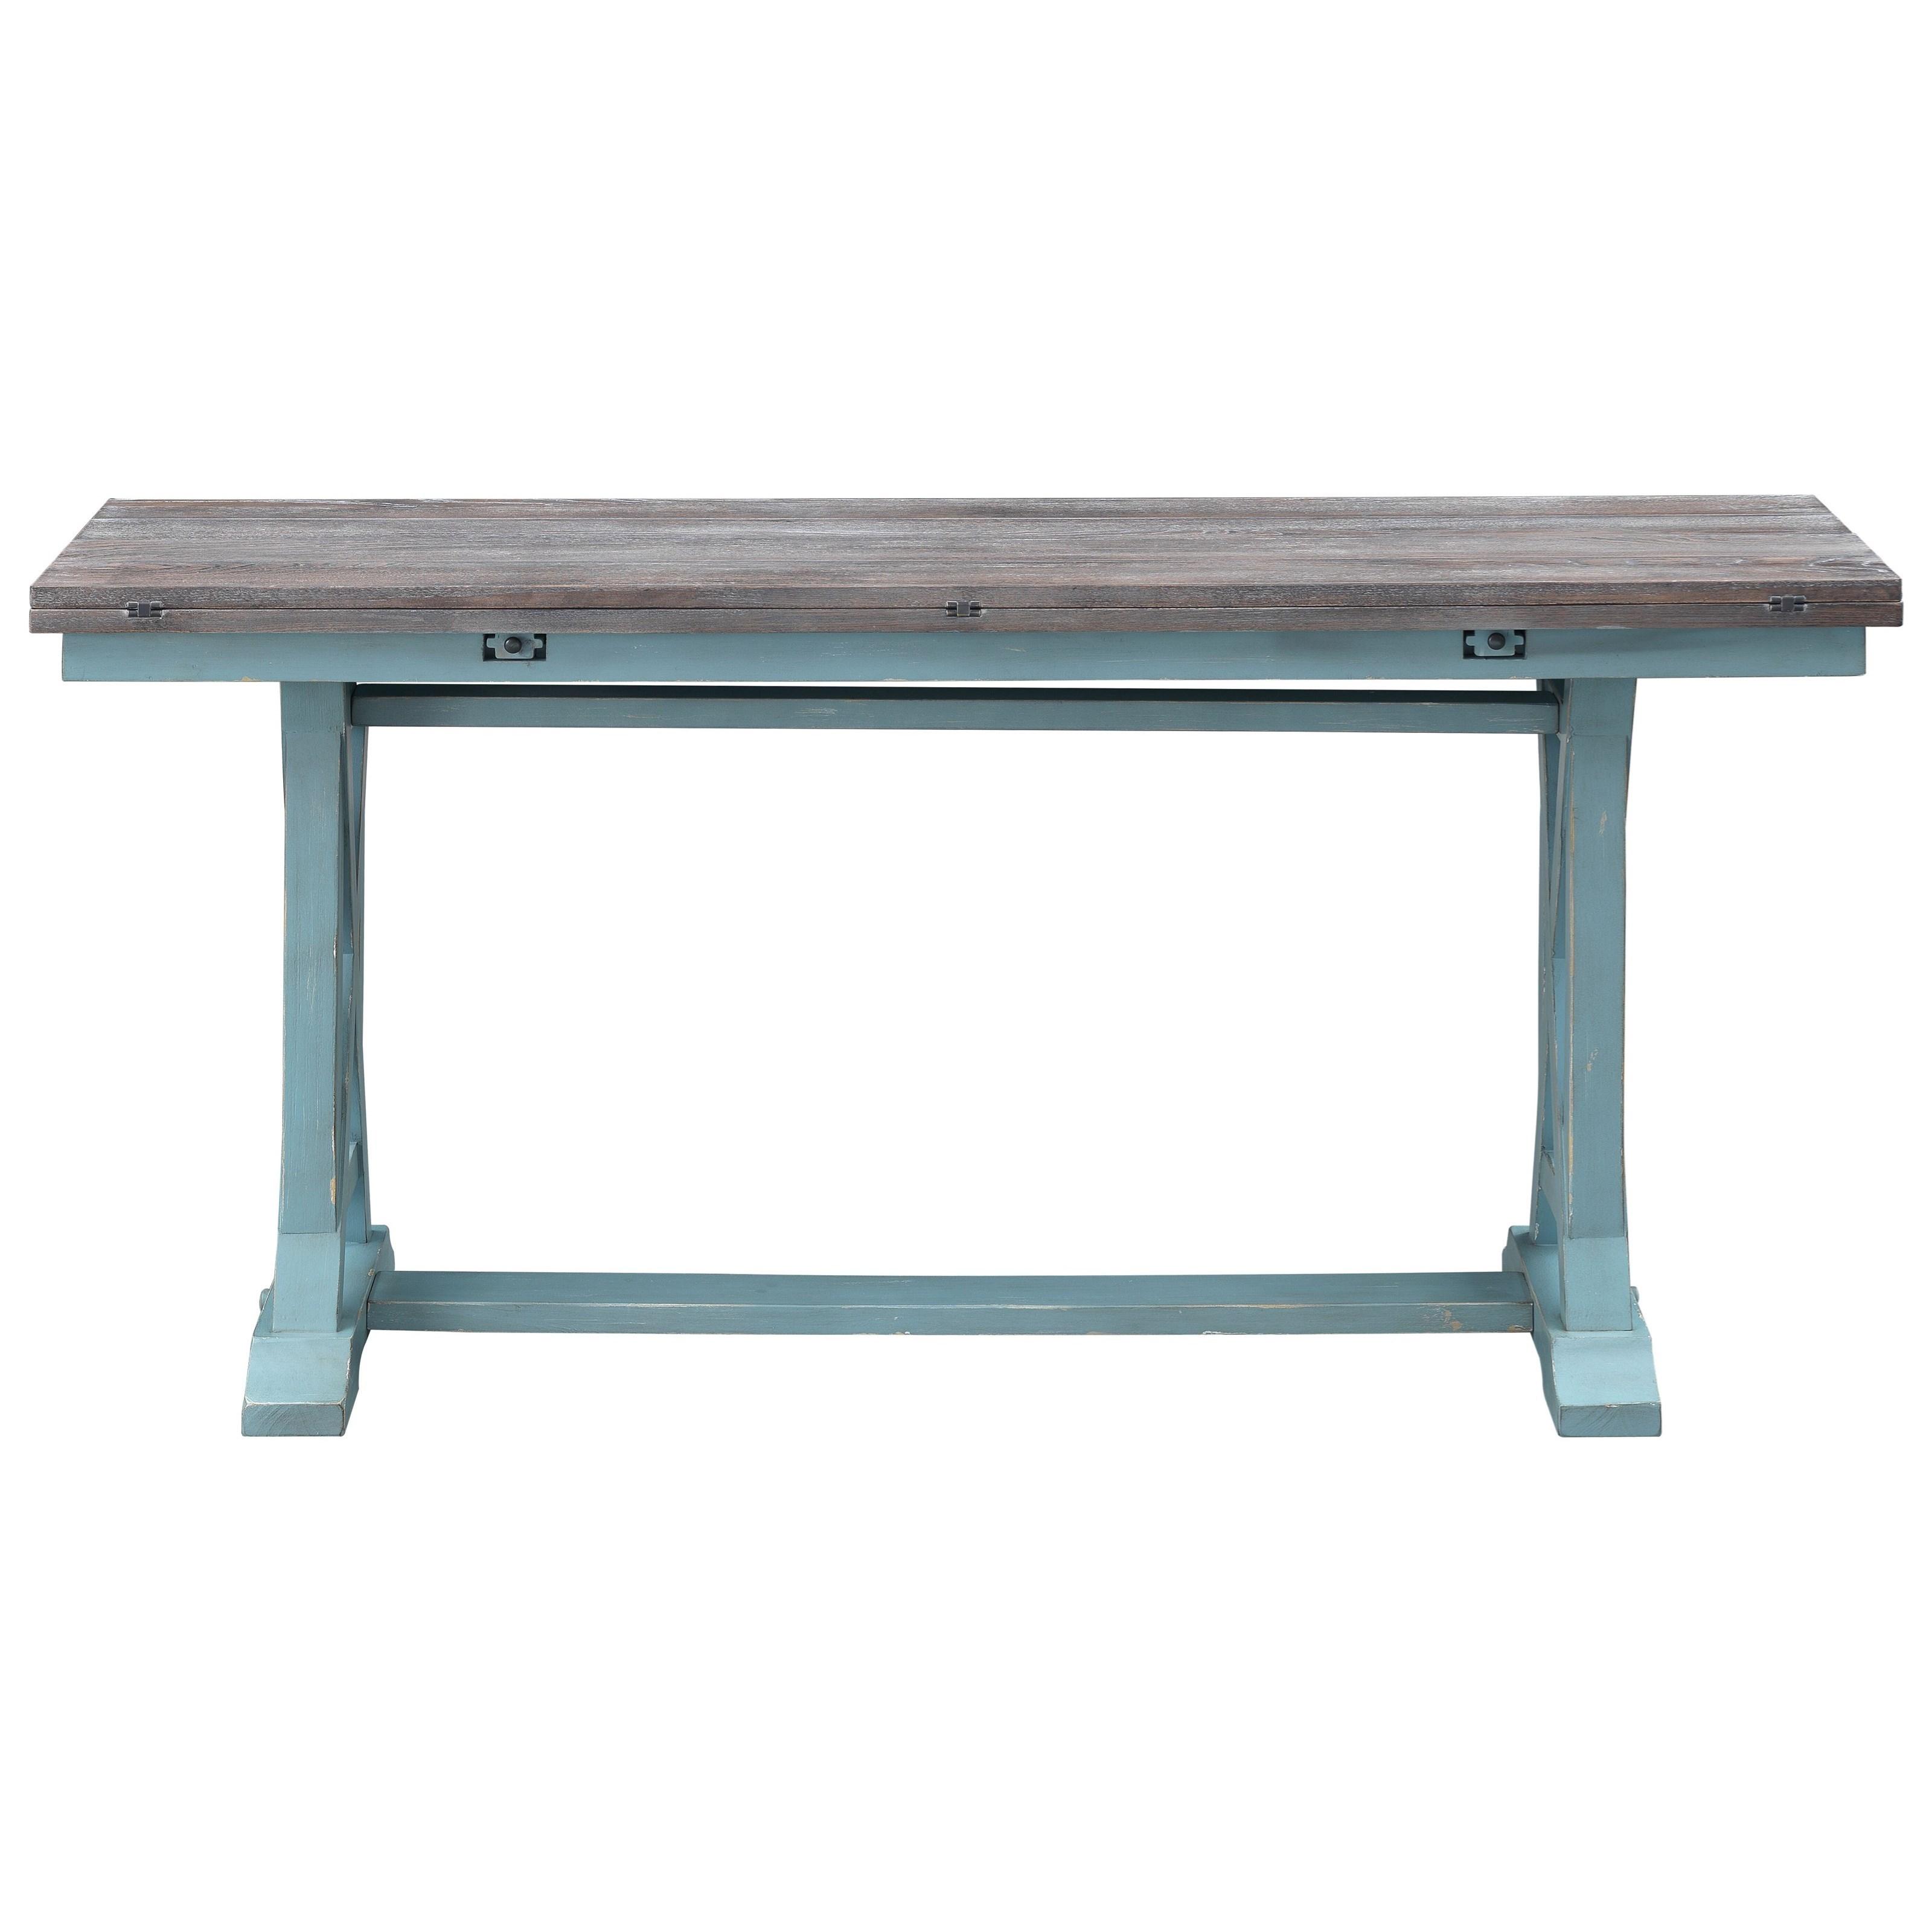 Bar Harbor Fold Out Console Table by C2C at Walker's Furniture